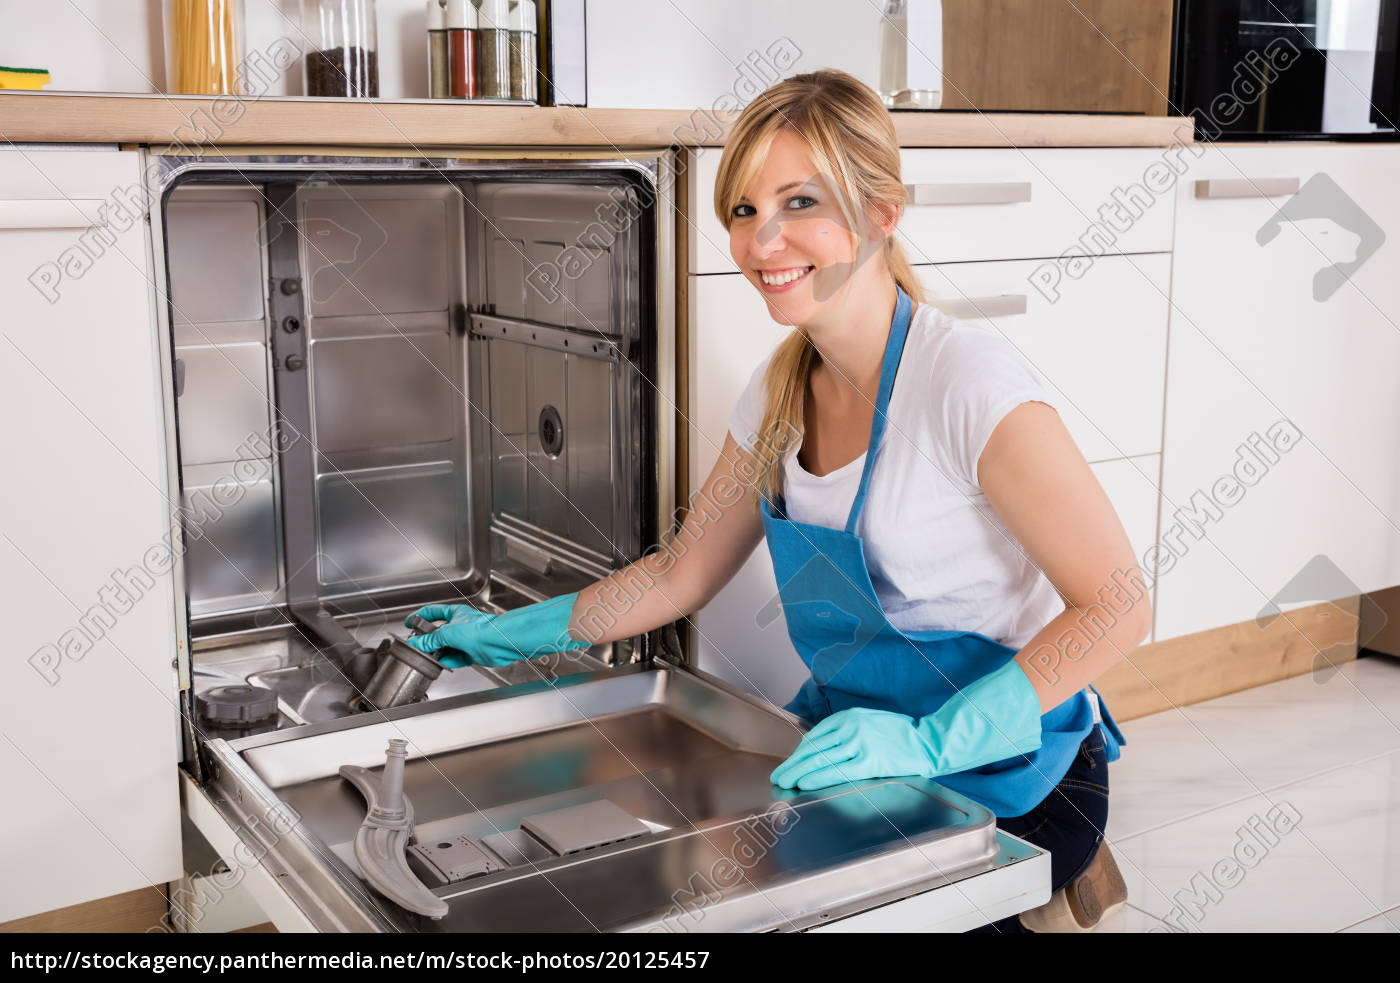 woman, cleaning, dishwasher, in, kitchen - 20125457